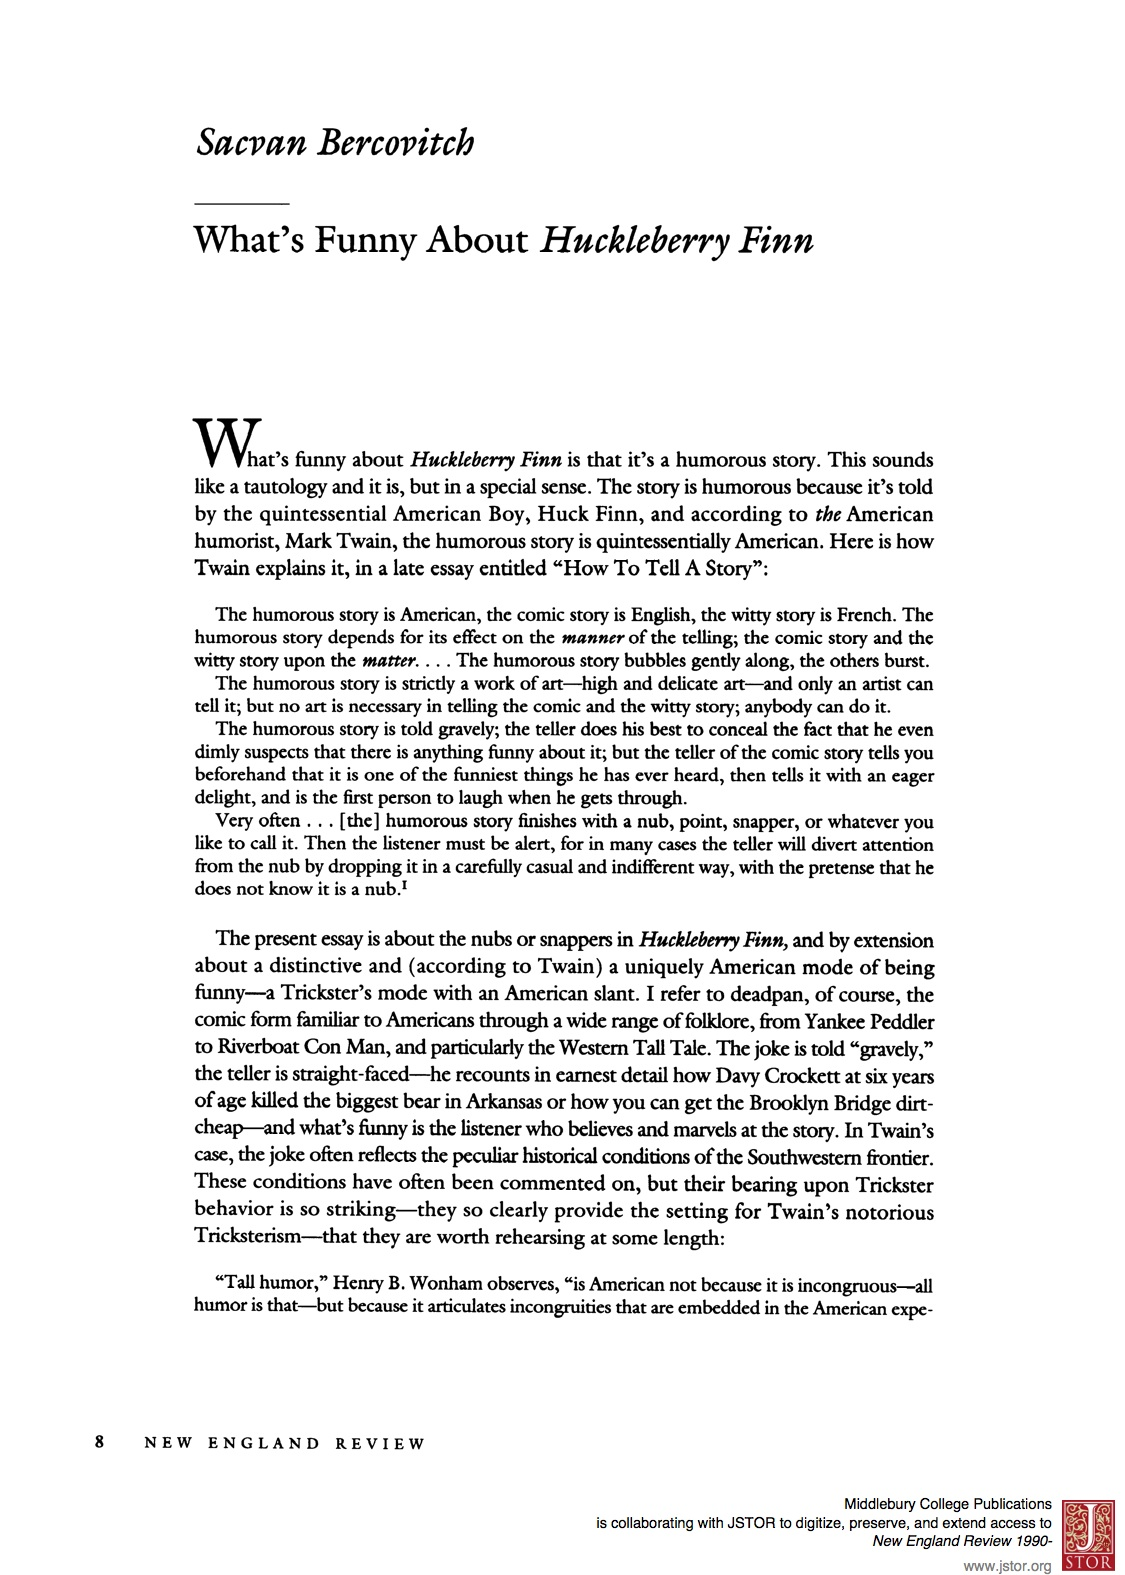 001 Essay Example Whatsfunnyabouthuckfinn Huck Awesome Finn Huckleberry Argumentative Topics The Adventures Of Prompts Full